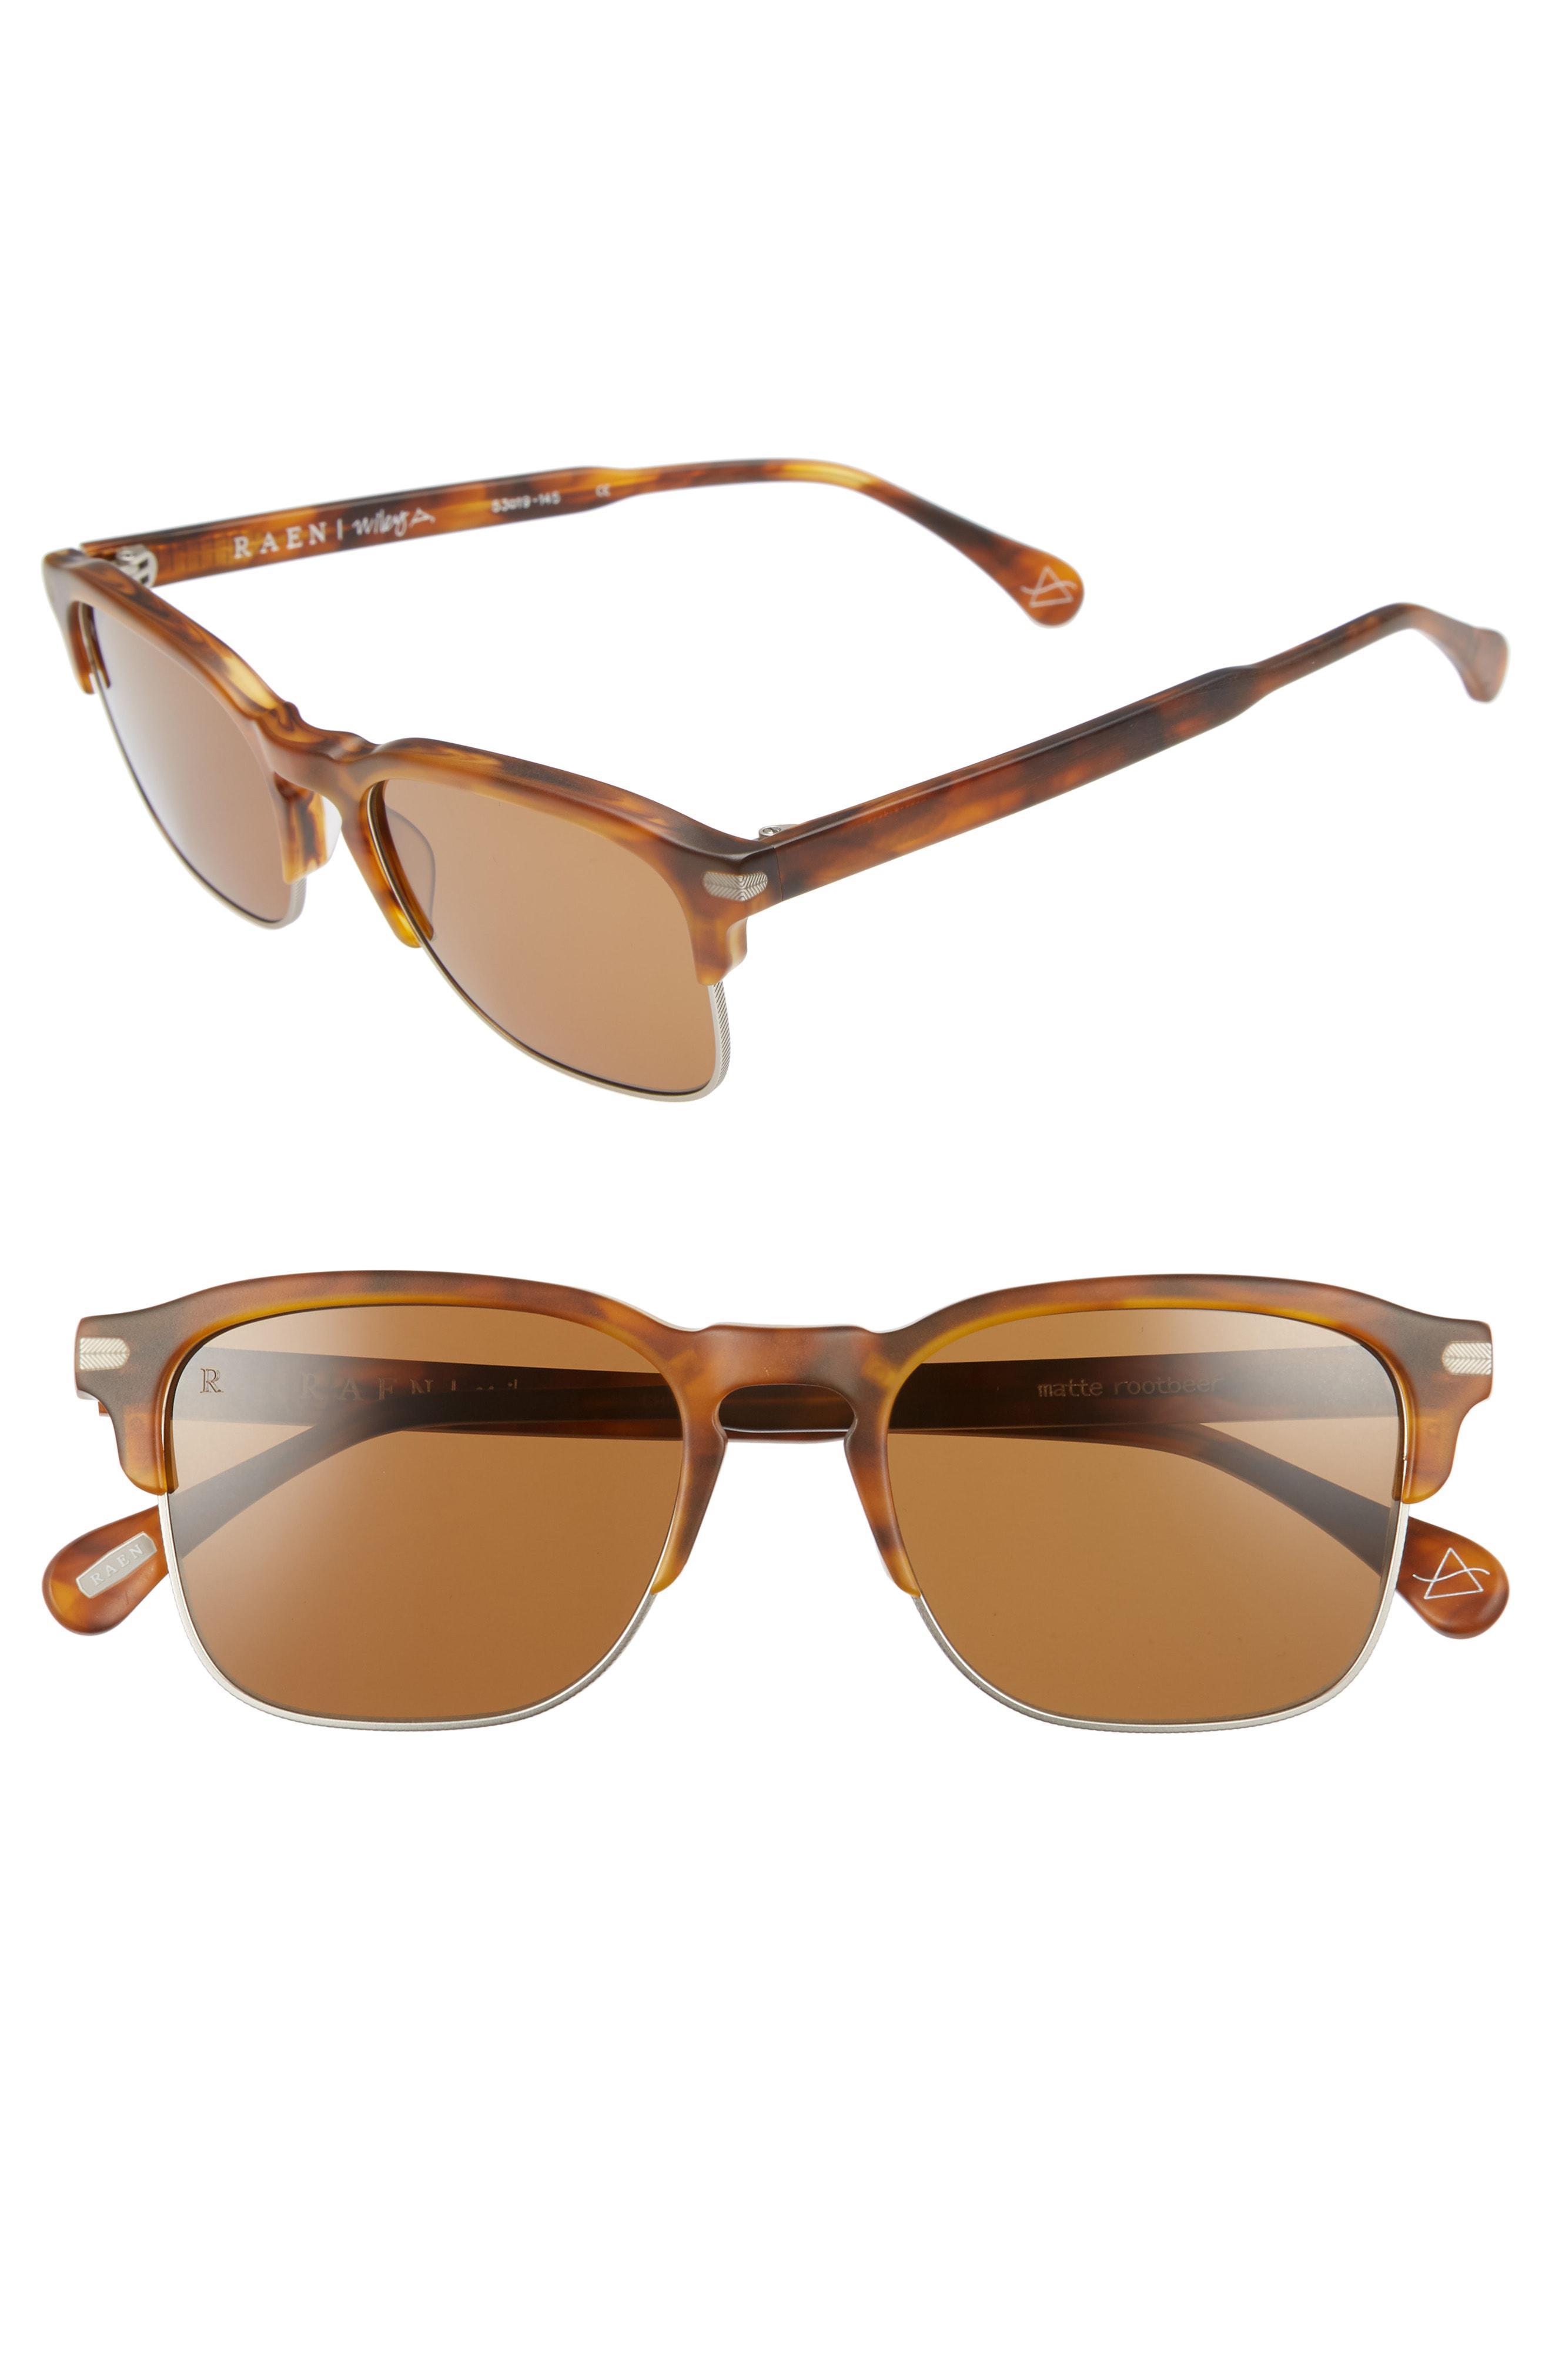 7350d92539 Lyst - Raen Wiley A 53mm Sunglasses - Americano in Brown for Men